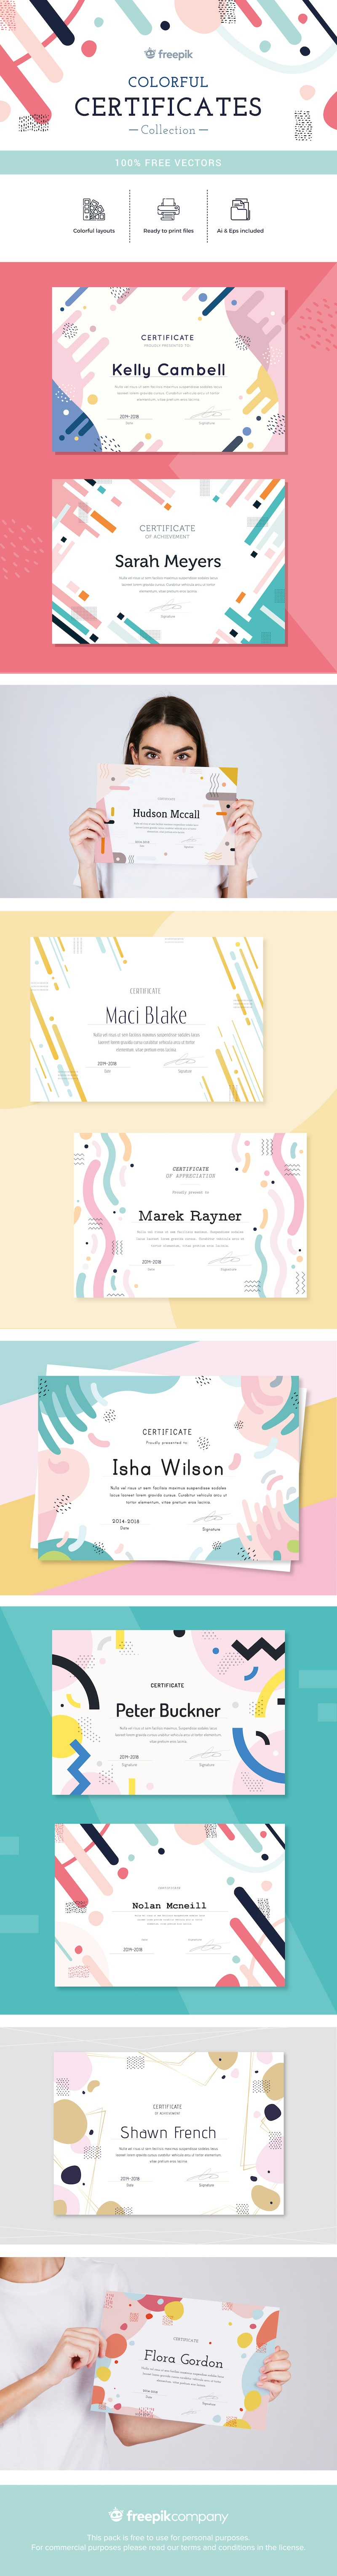 free colorful certificate vector templates